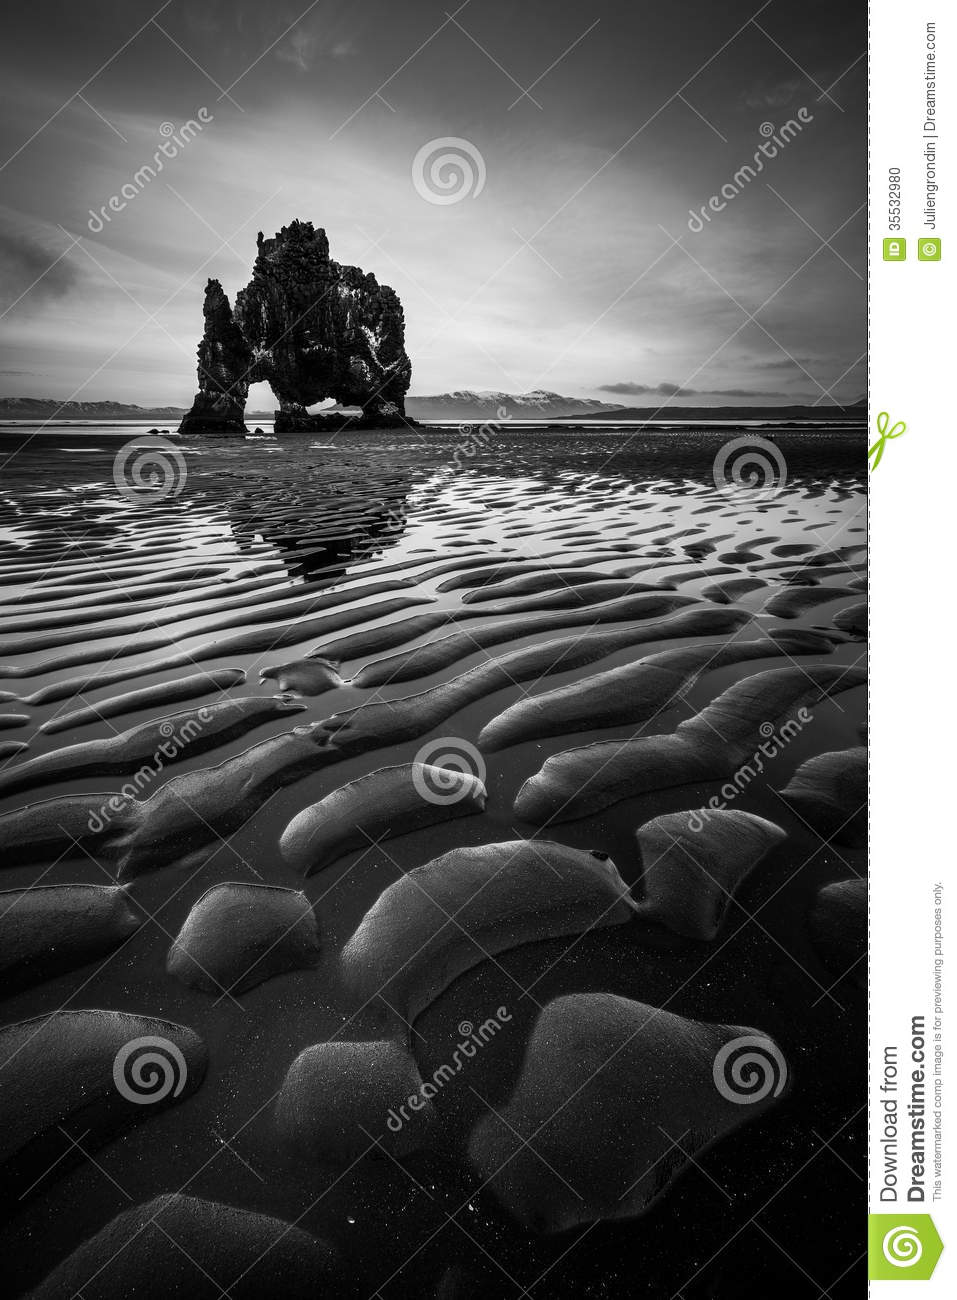 Download Hvitserkur in Island stockfoto. Bild von dinosaurier - 35532980